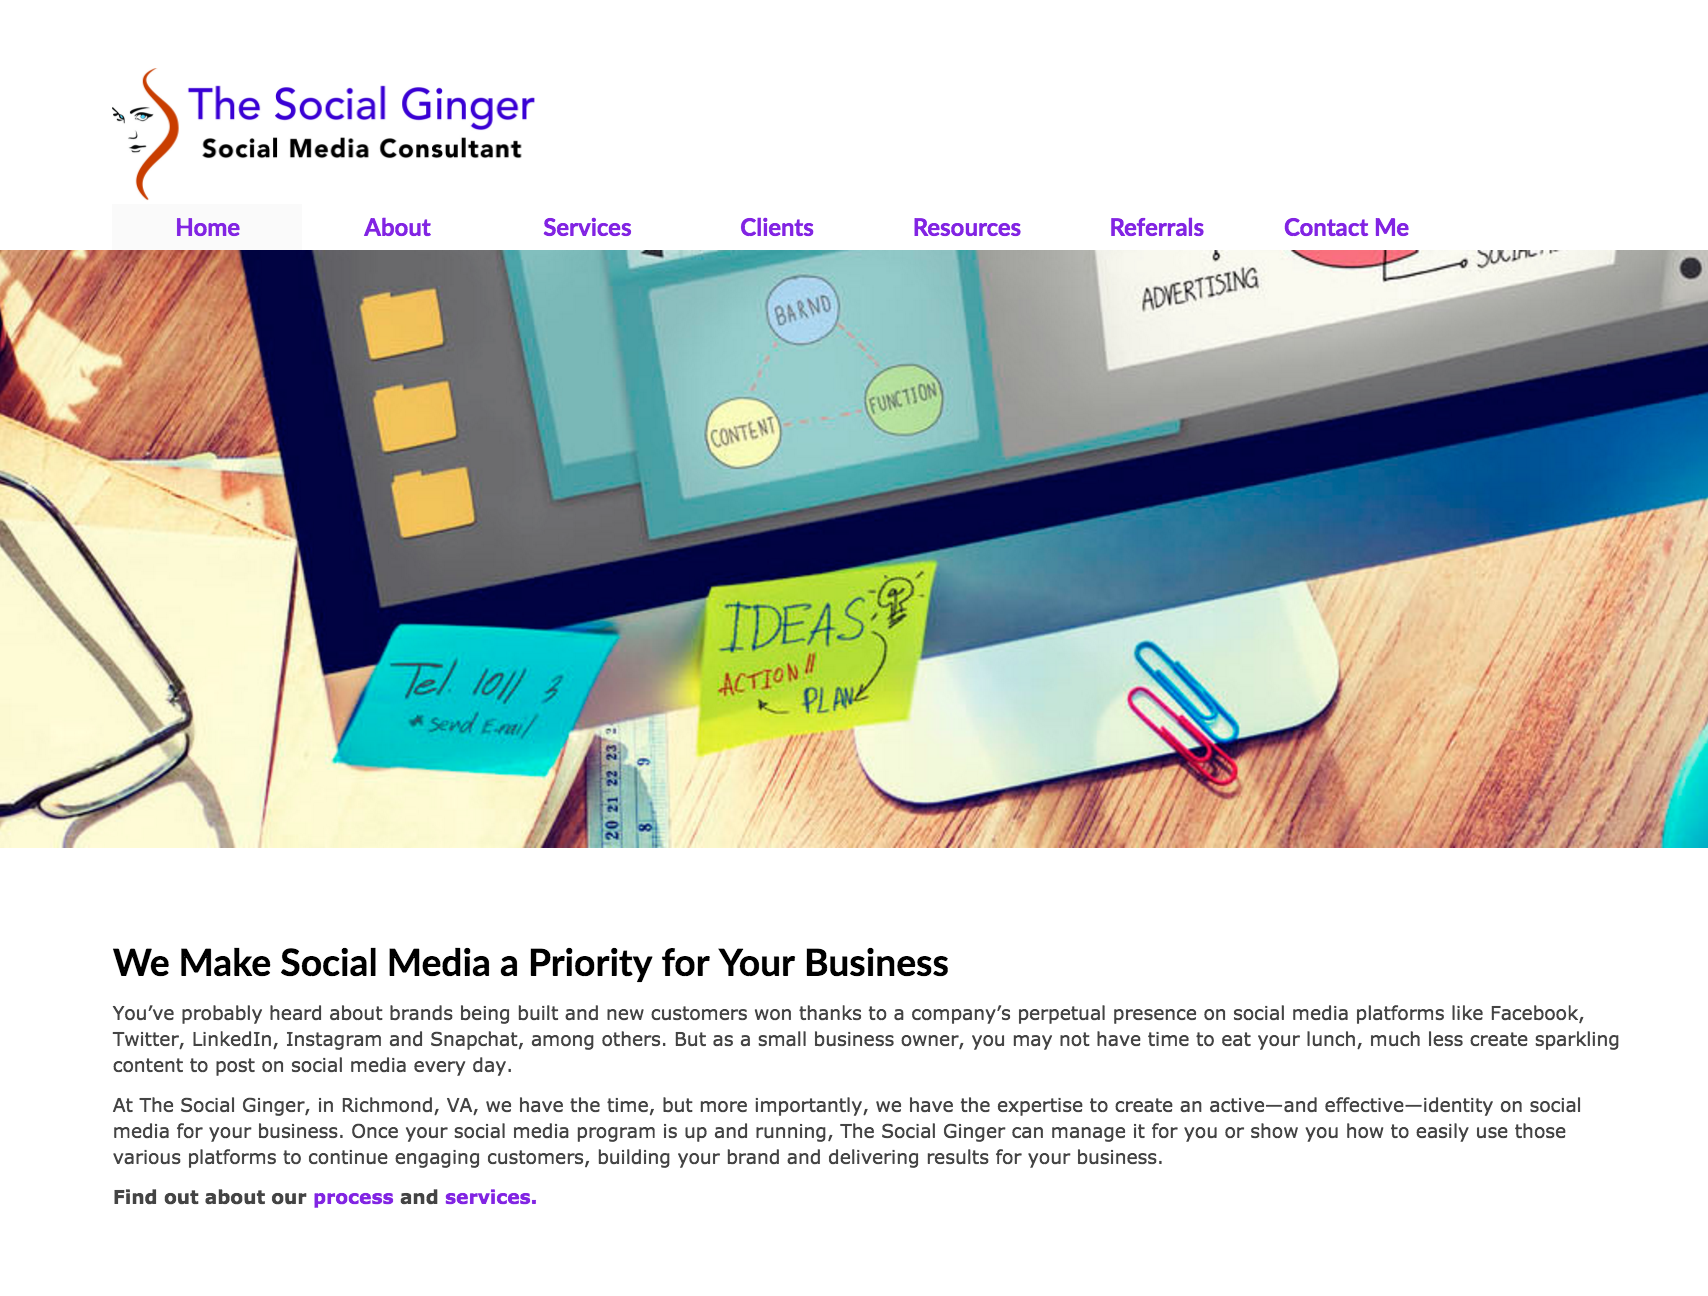 The Social Ginger website